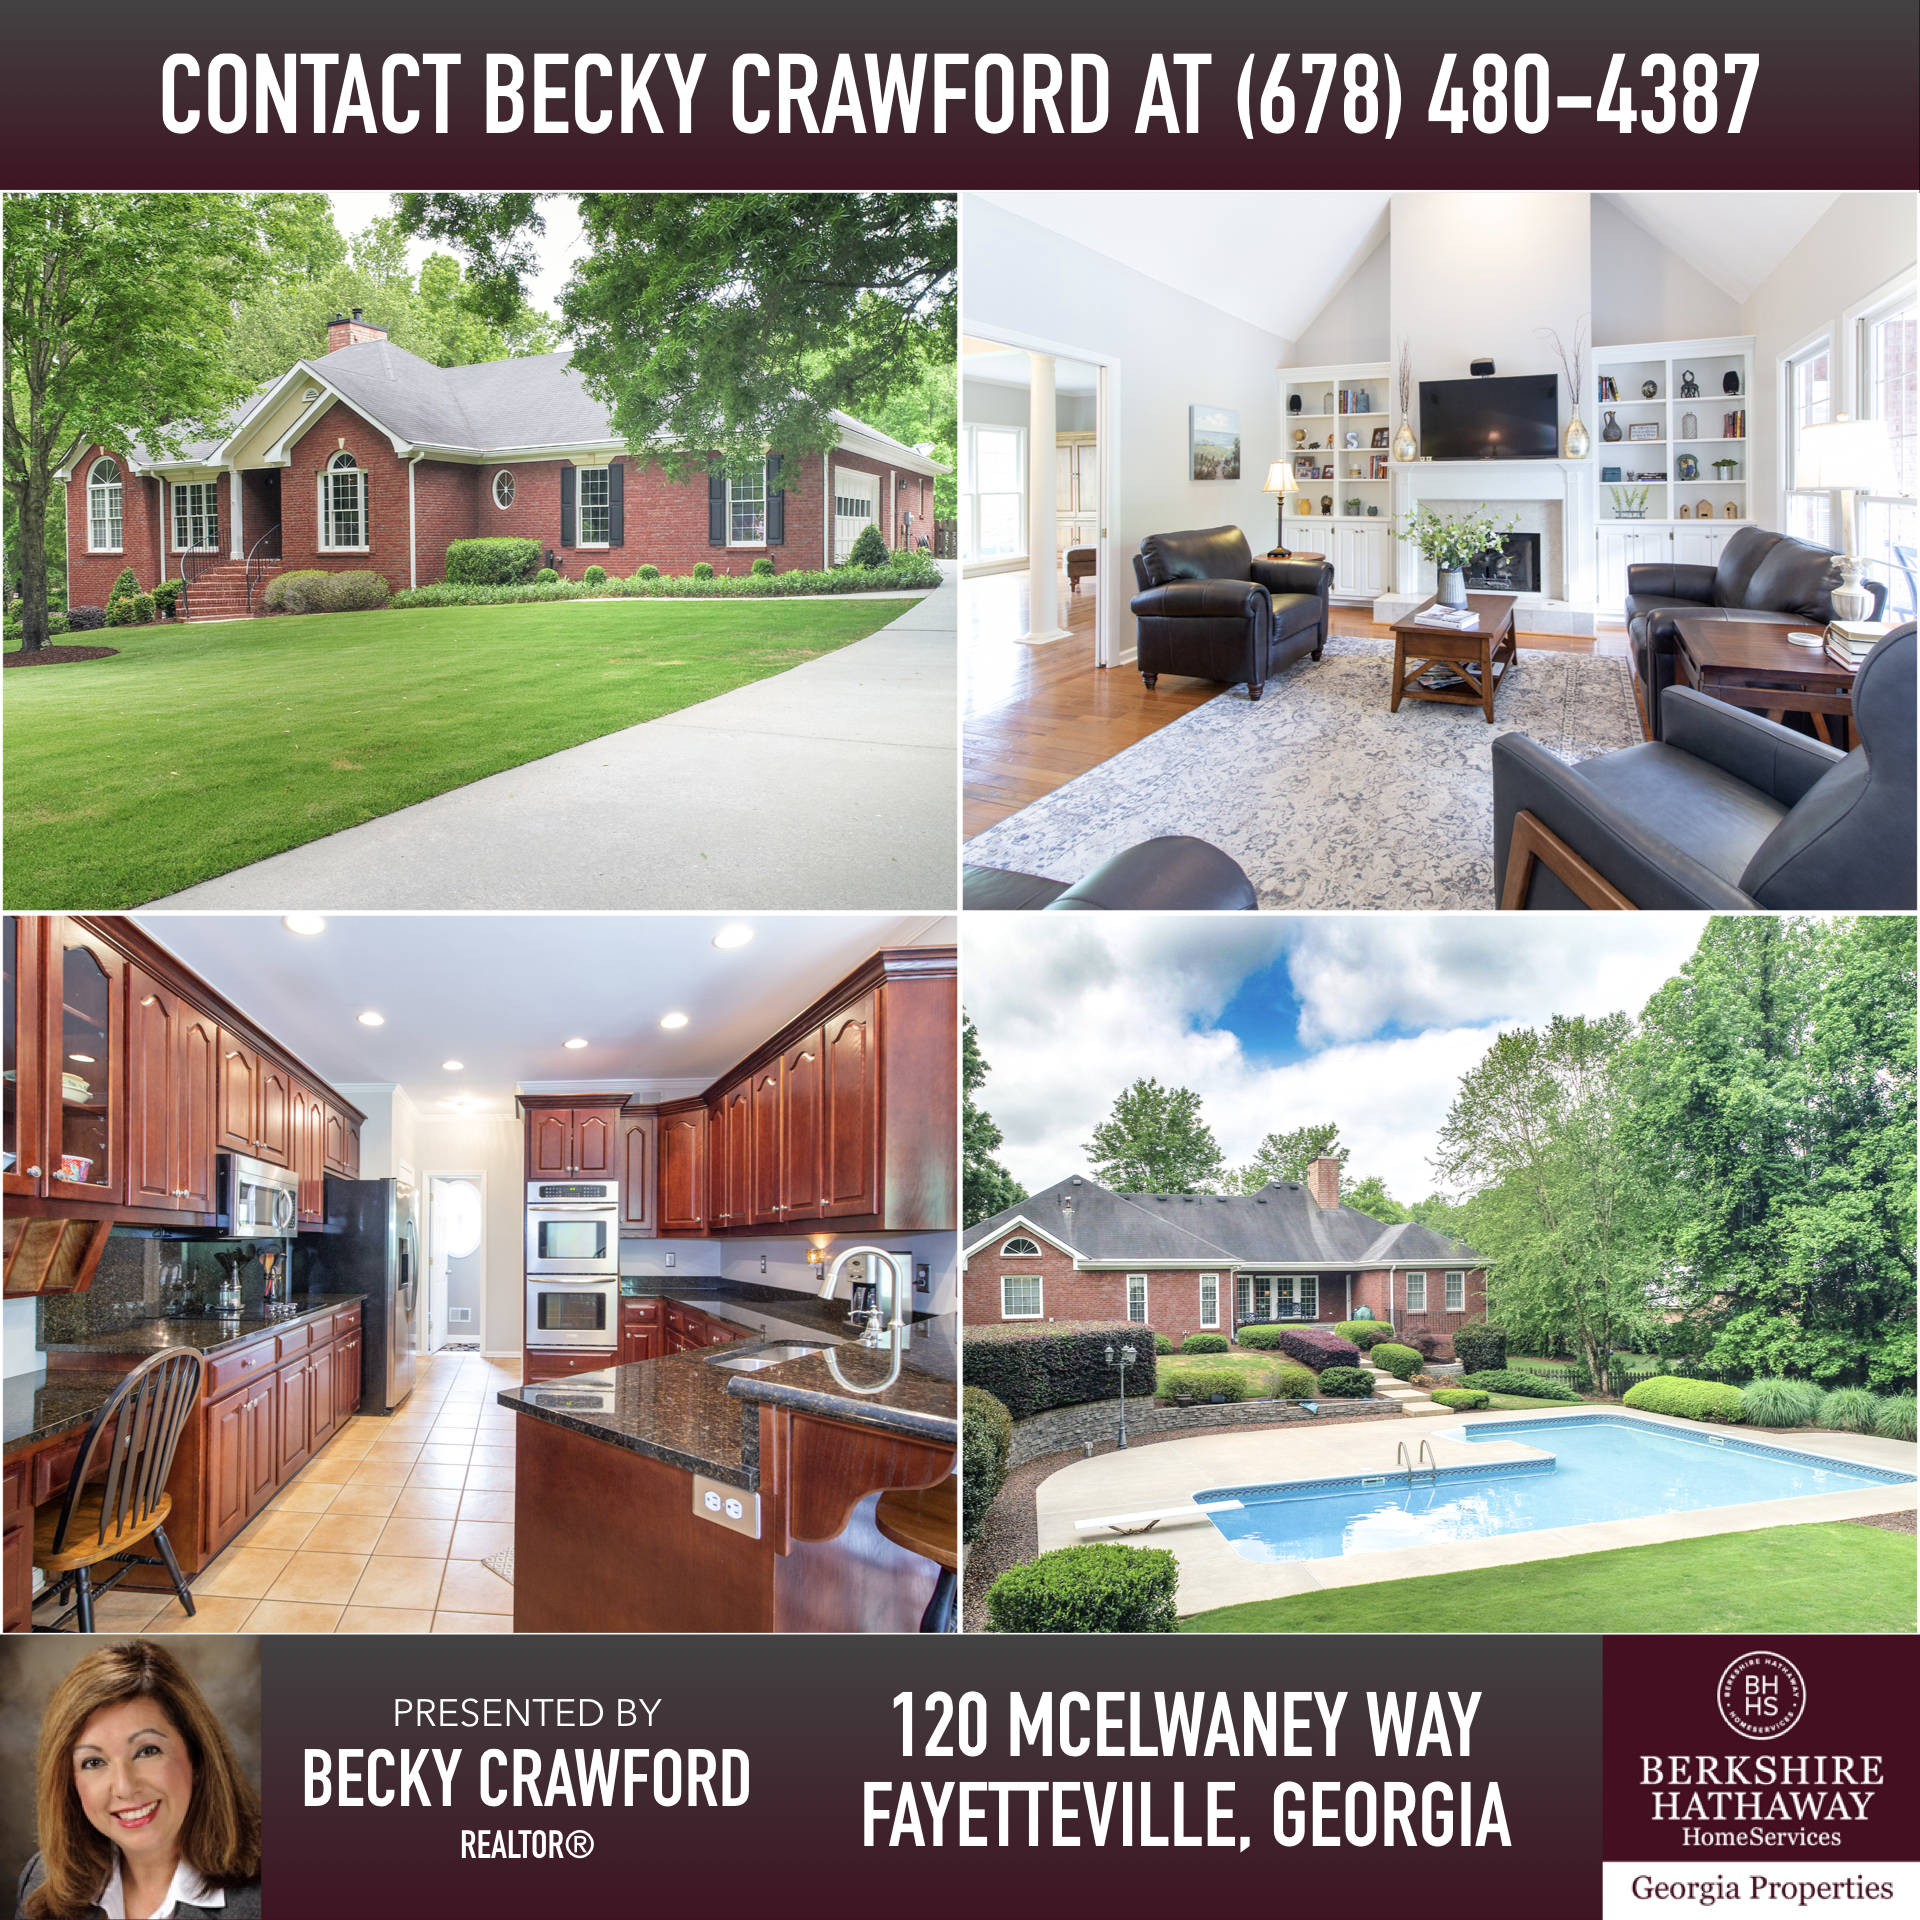 120 McElwaney Way - Branded Photos.jpg